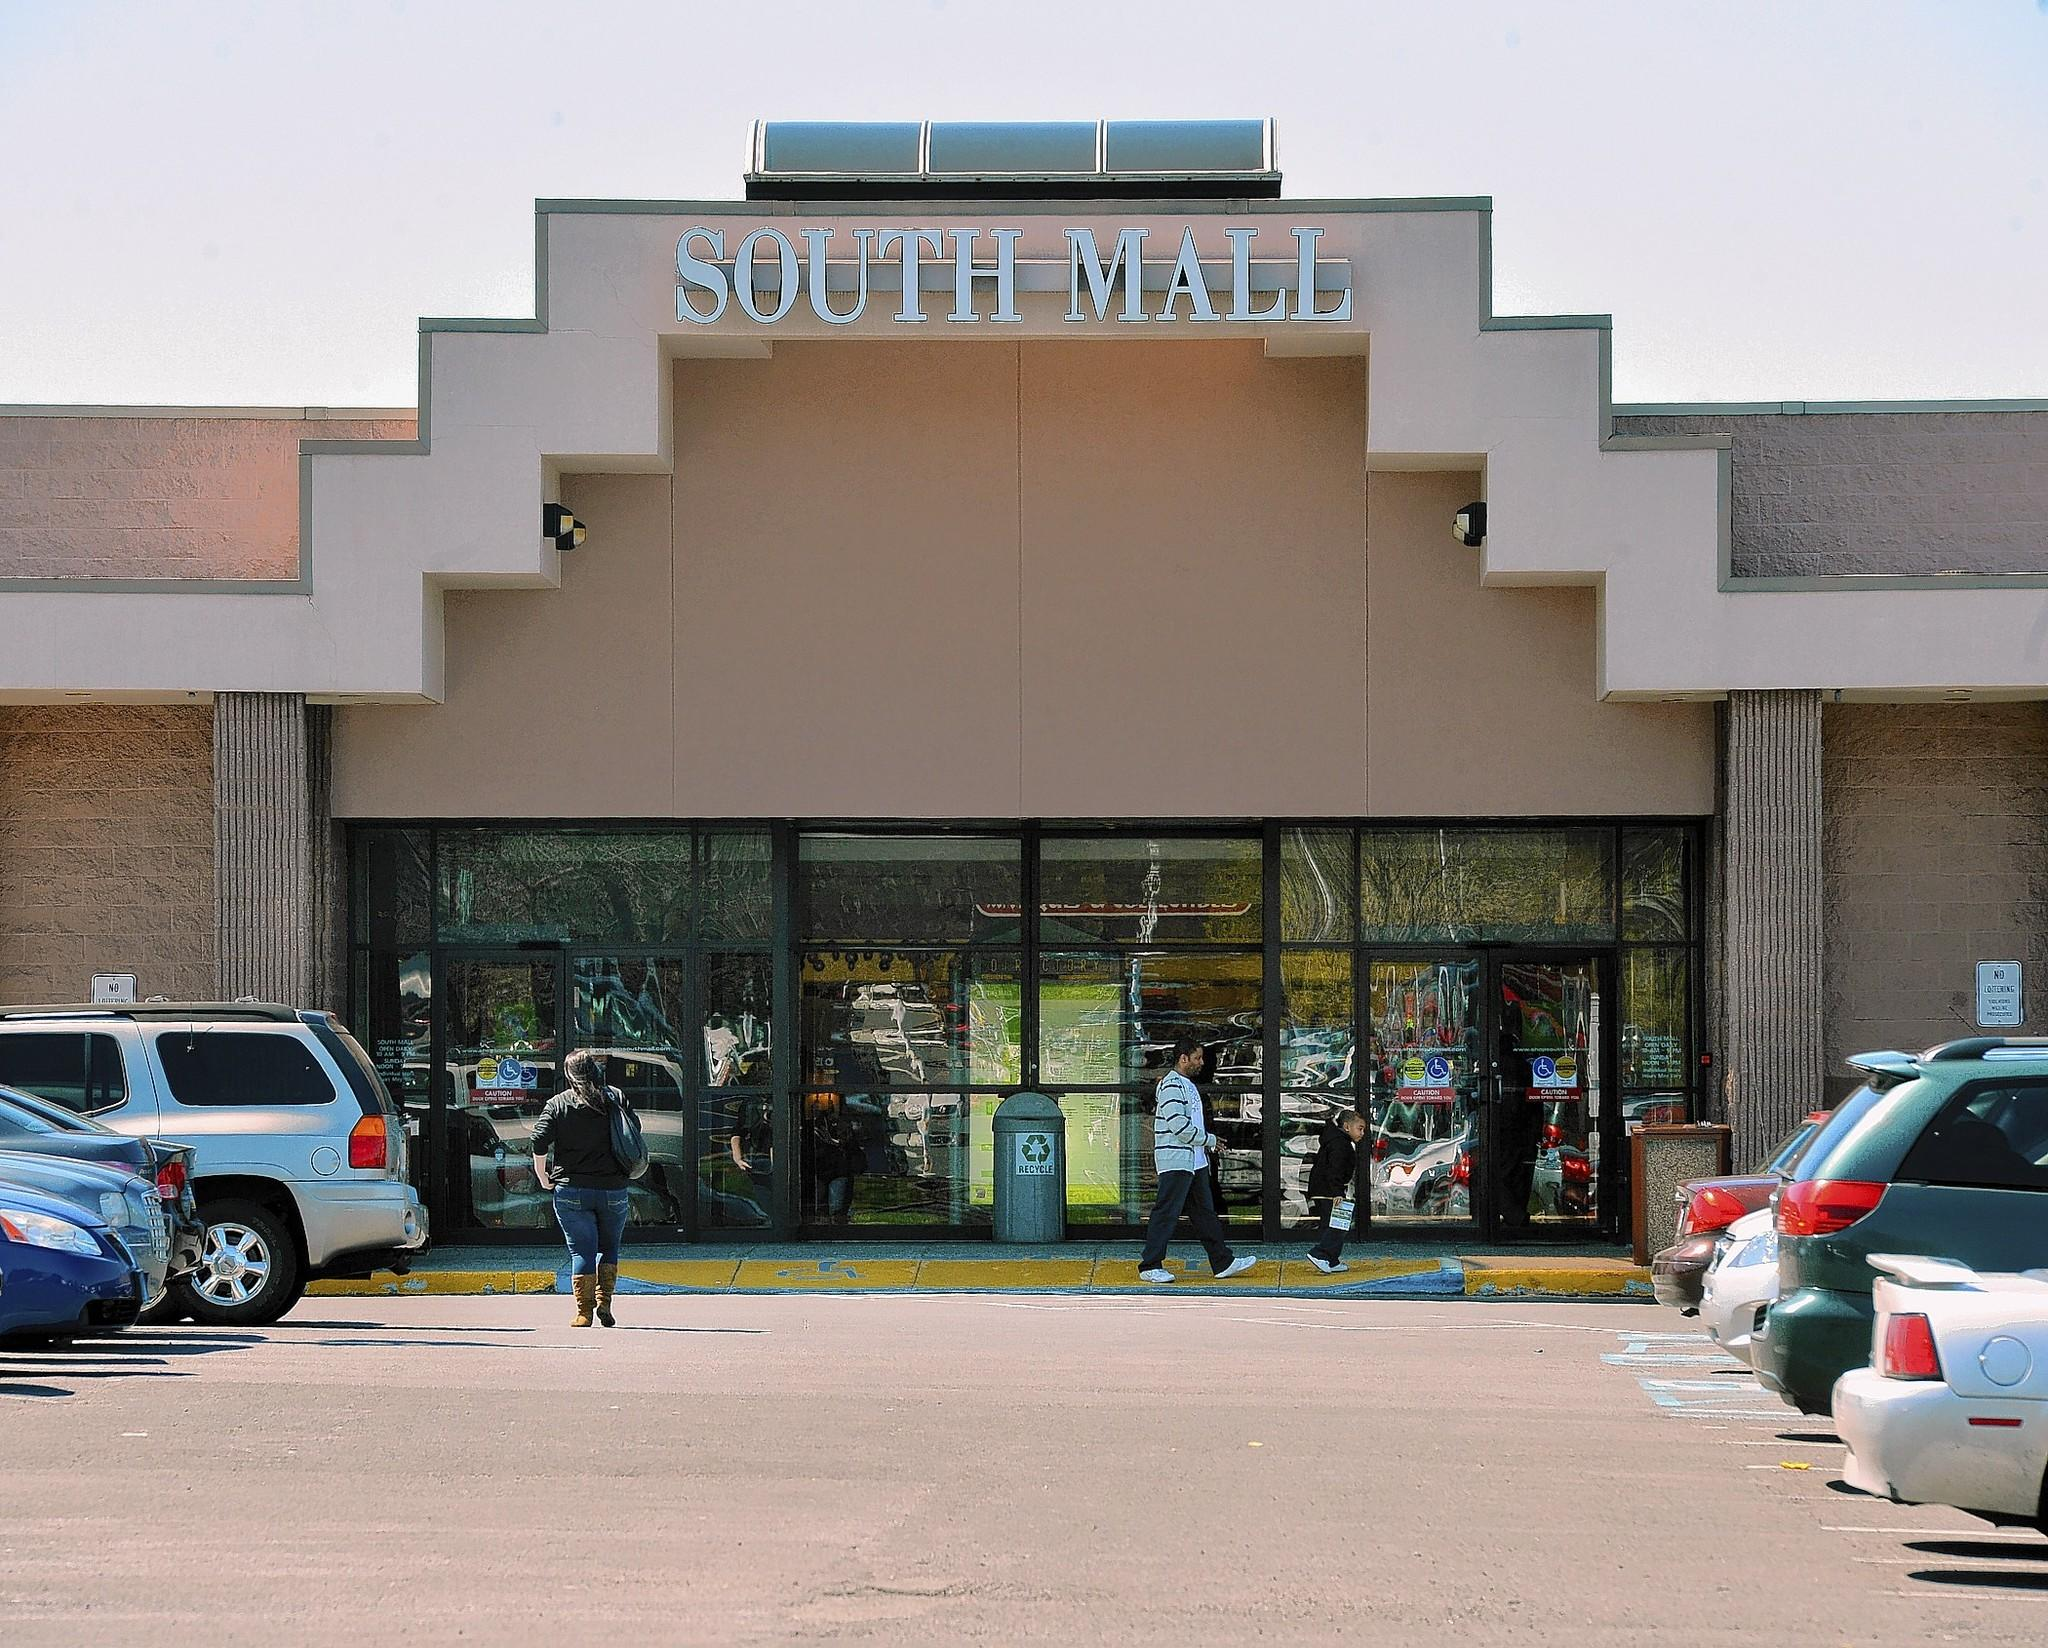 County real estate records list the new owner of South Mall as Nicholas Parks Mall LLC in Willow Grove, Montgomery County.